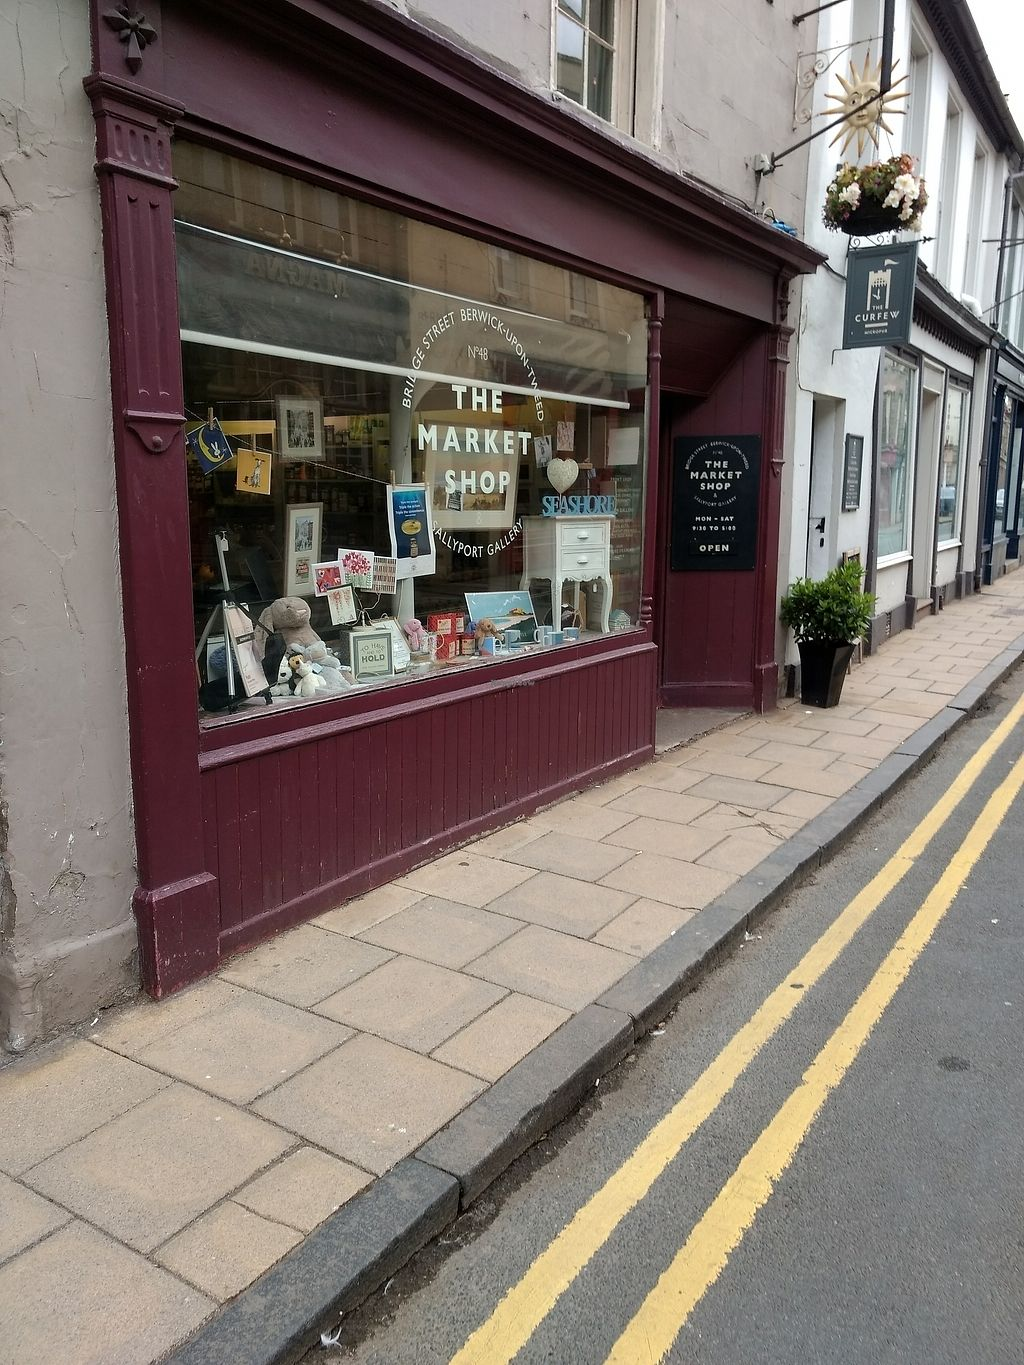 """Photo of The Market Shop and Sallyport Gallery  by <a href=""""/members/profile/craigmc"""">craigmc</a> <br/>outside <br/> July 26, 2017  - <a href='/contact/abuse/image/21683/285178'>Report</a>"""